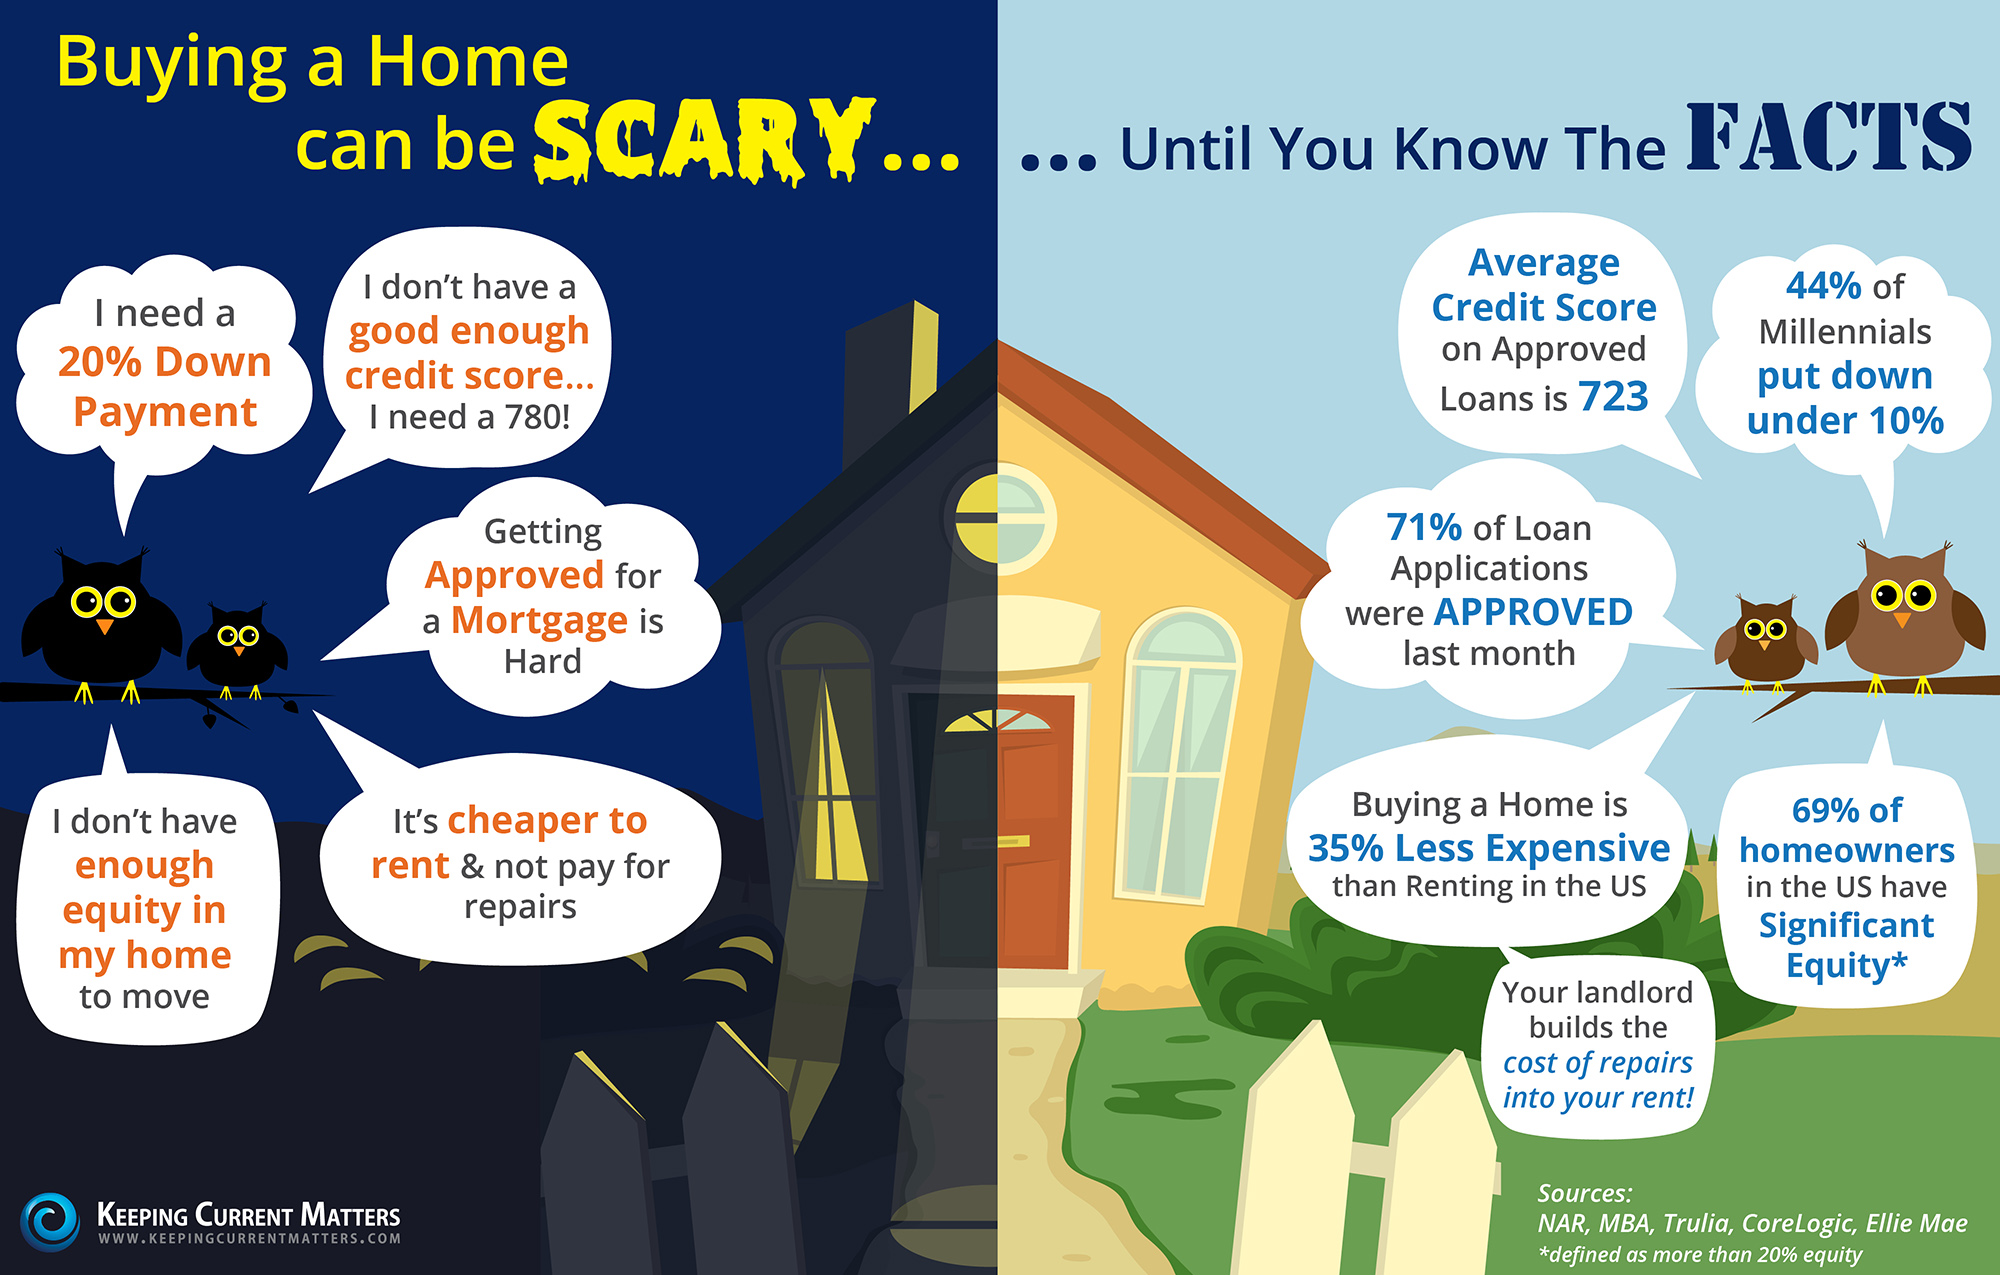 Buying A Home Can Be Scary... Until You Know the FACTS! [INFOGRAPHIC] | Keeping Current Matters